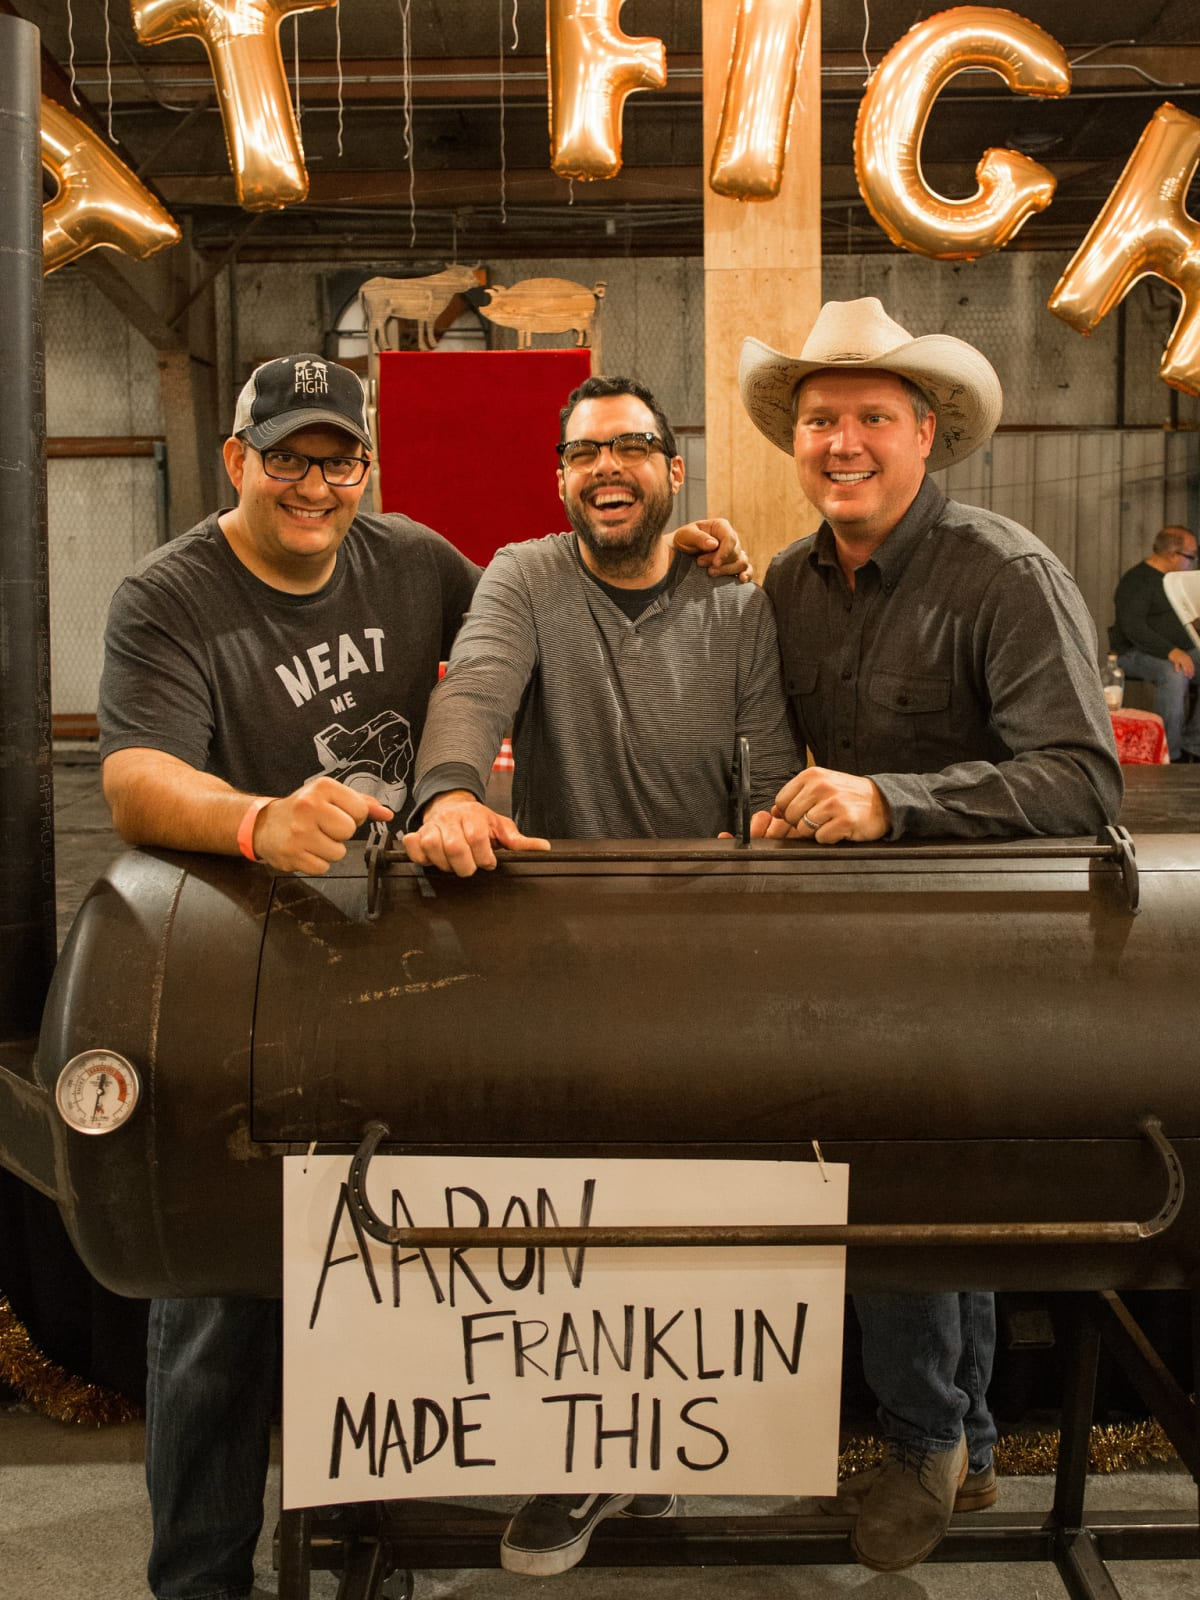 Daniel Vaughn, Aaron Franklin at Meat Fight 2015